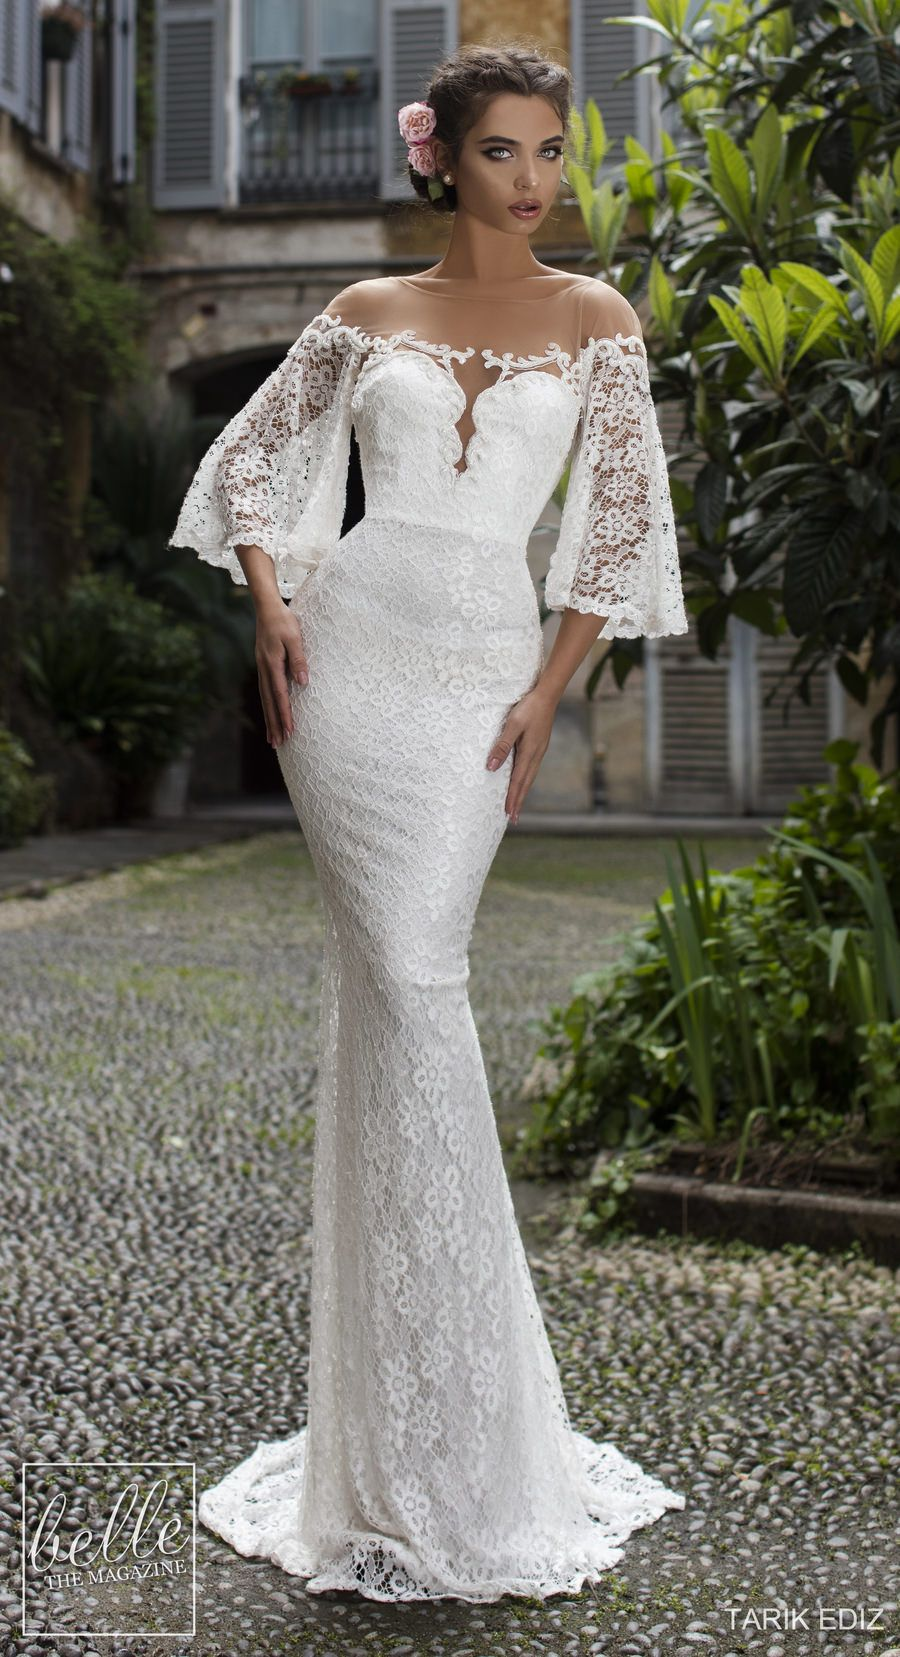 Wedding Dresses 2019 - The White Bridal Collection. Lace romantic mermaid  of the shoulder sweetheart 93c6c74f5e